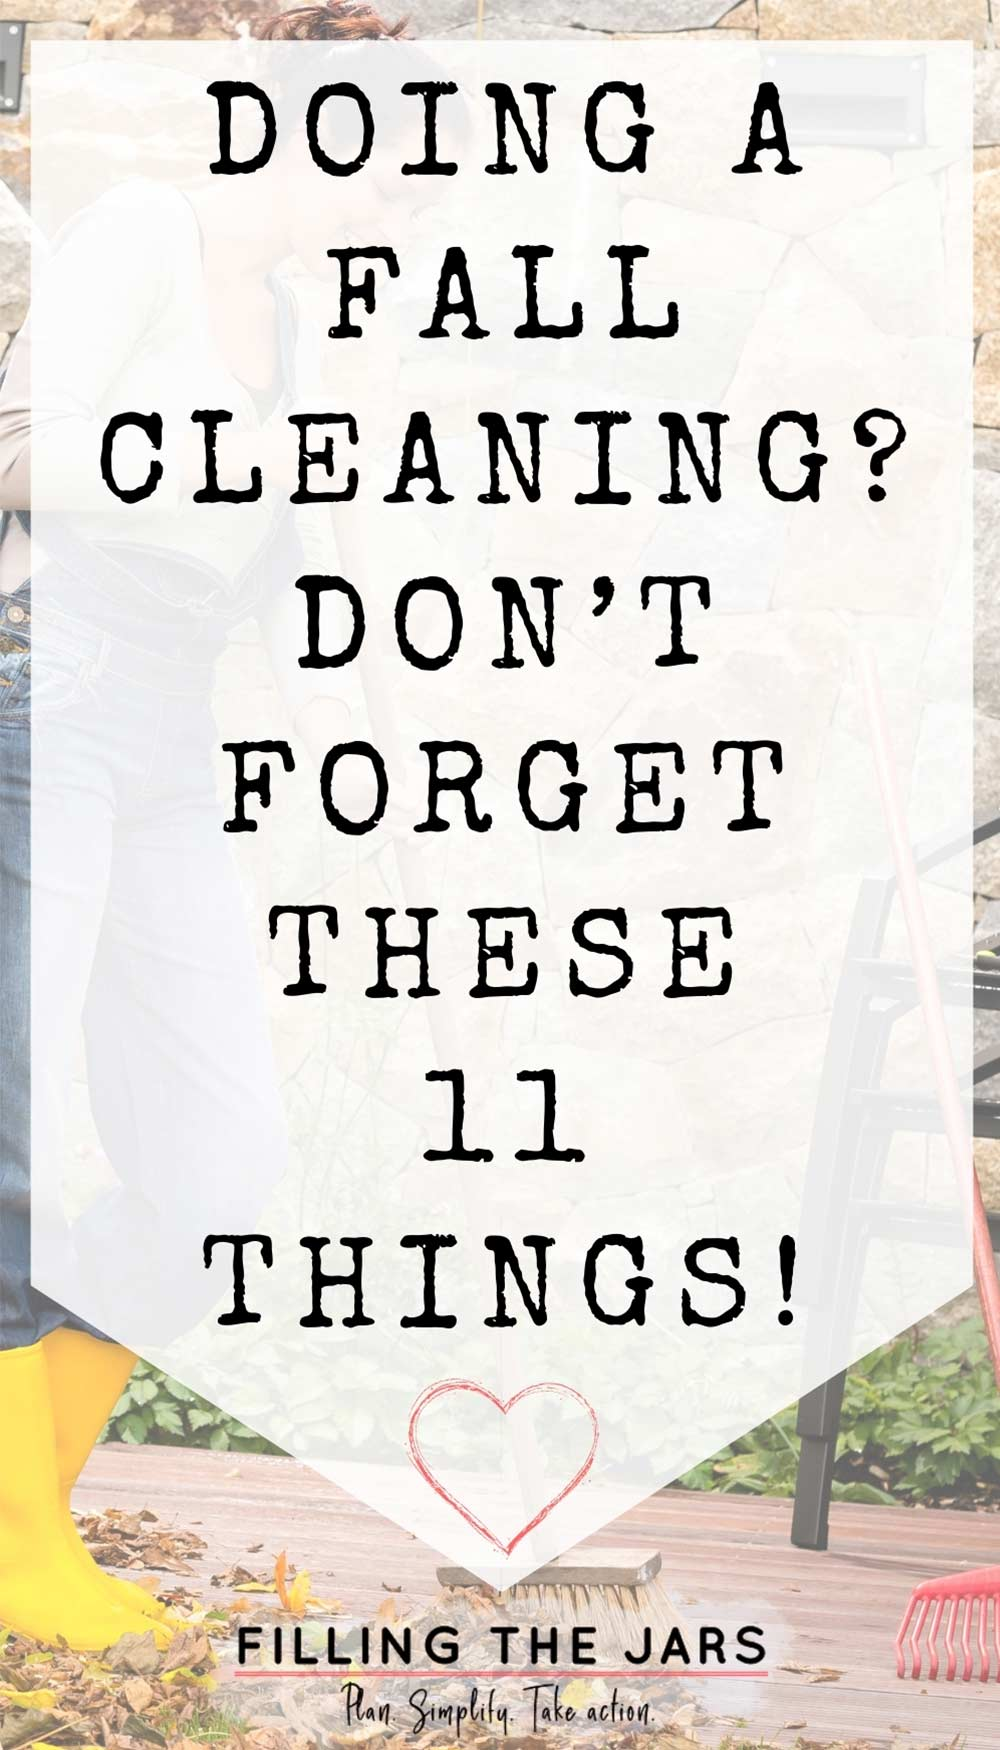 Text things to remember when doing a fall cleaning on white background over image of woman wearing overalls and yellow boots sweeping deck as part of autumn cleaning tasks.